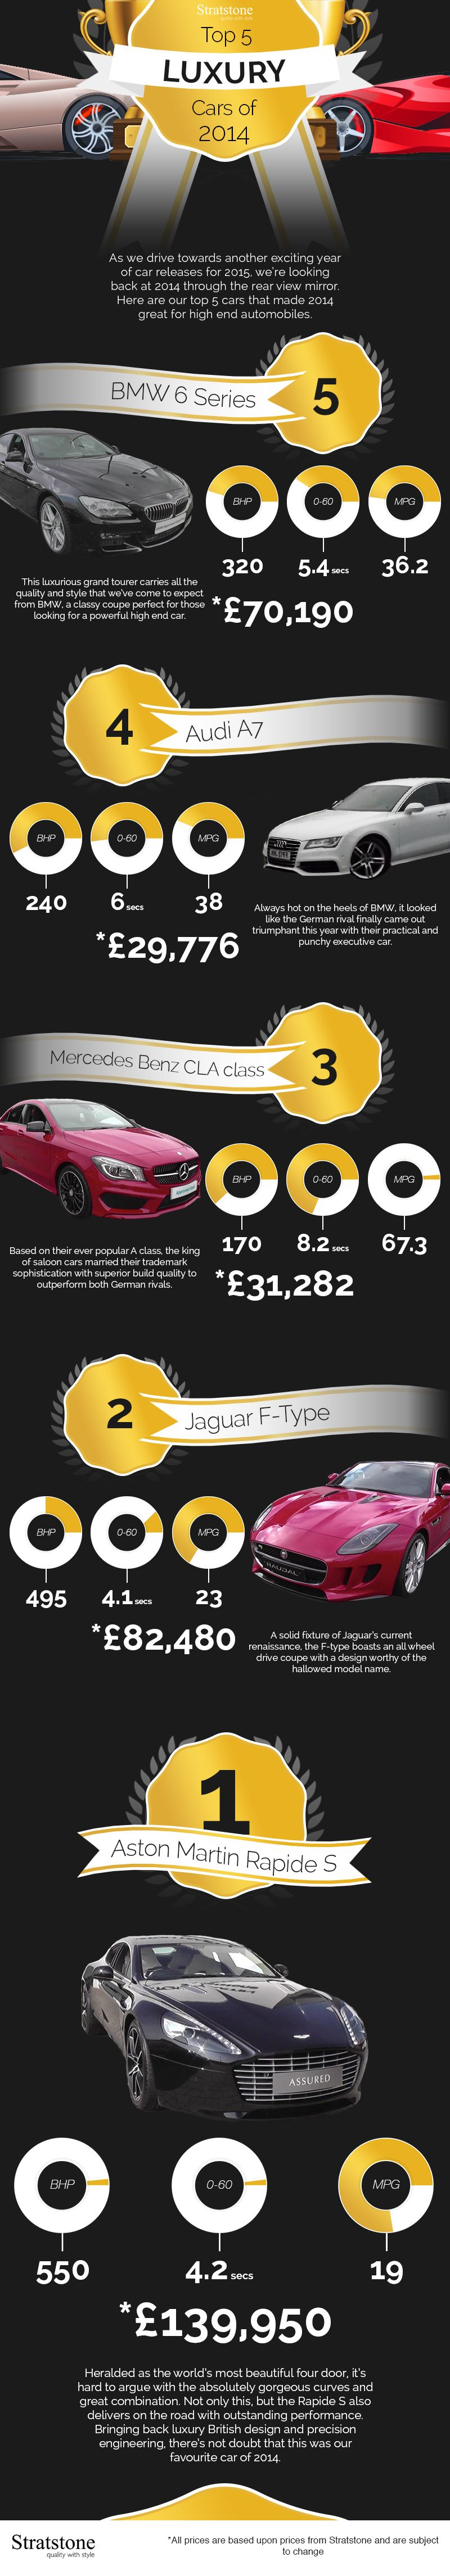 Top 5 Luxury Cars of 2014 #infographic